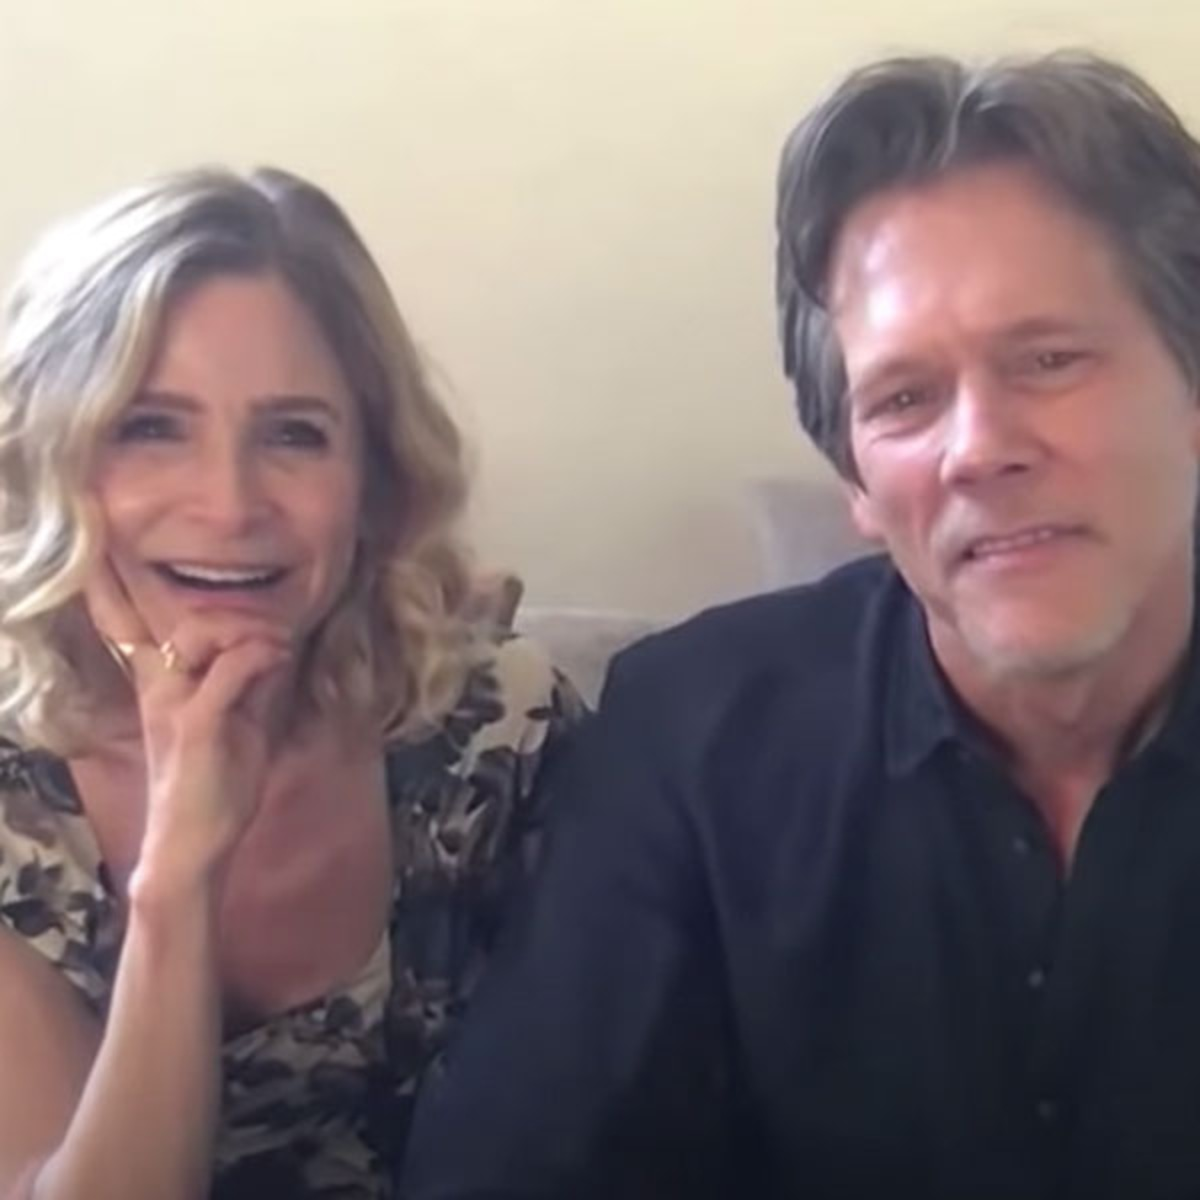 Watch Kevin Bacon And Kyra Sedgwick S Hilarious Dumb Couple Fight E Online Ca He married second and current wife 'molly mcnearney' in 2013. watch kevin bacon and kyra sedgwick s